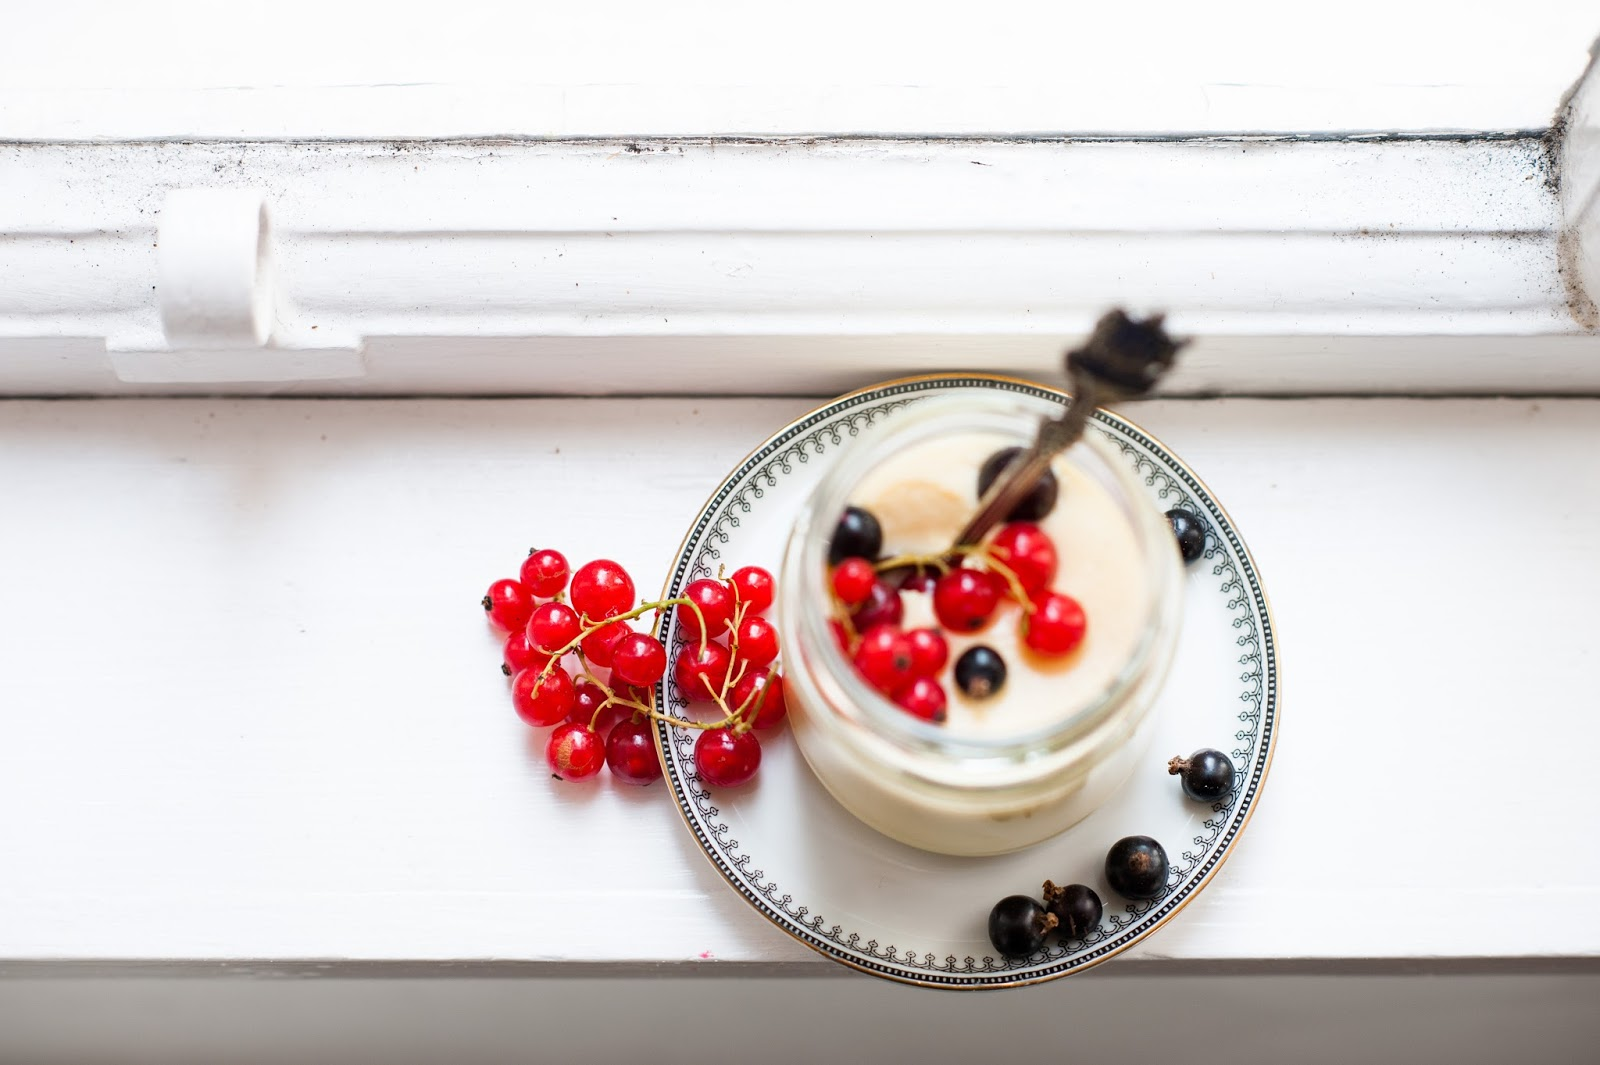 Can you help me get a quick and easy dessert recipe for when my friends come overr?